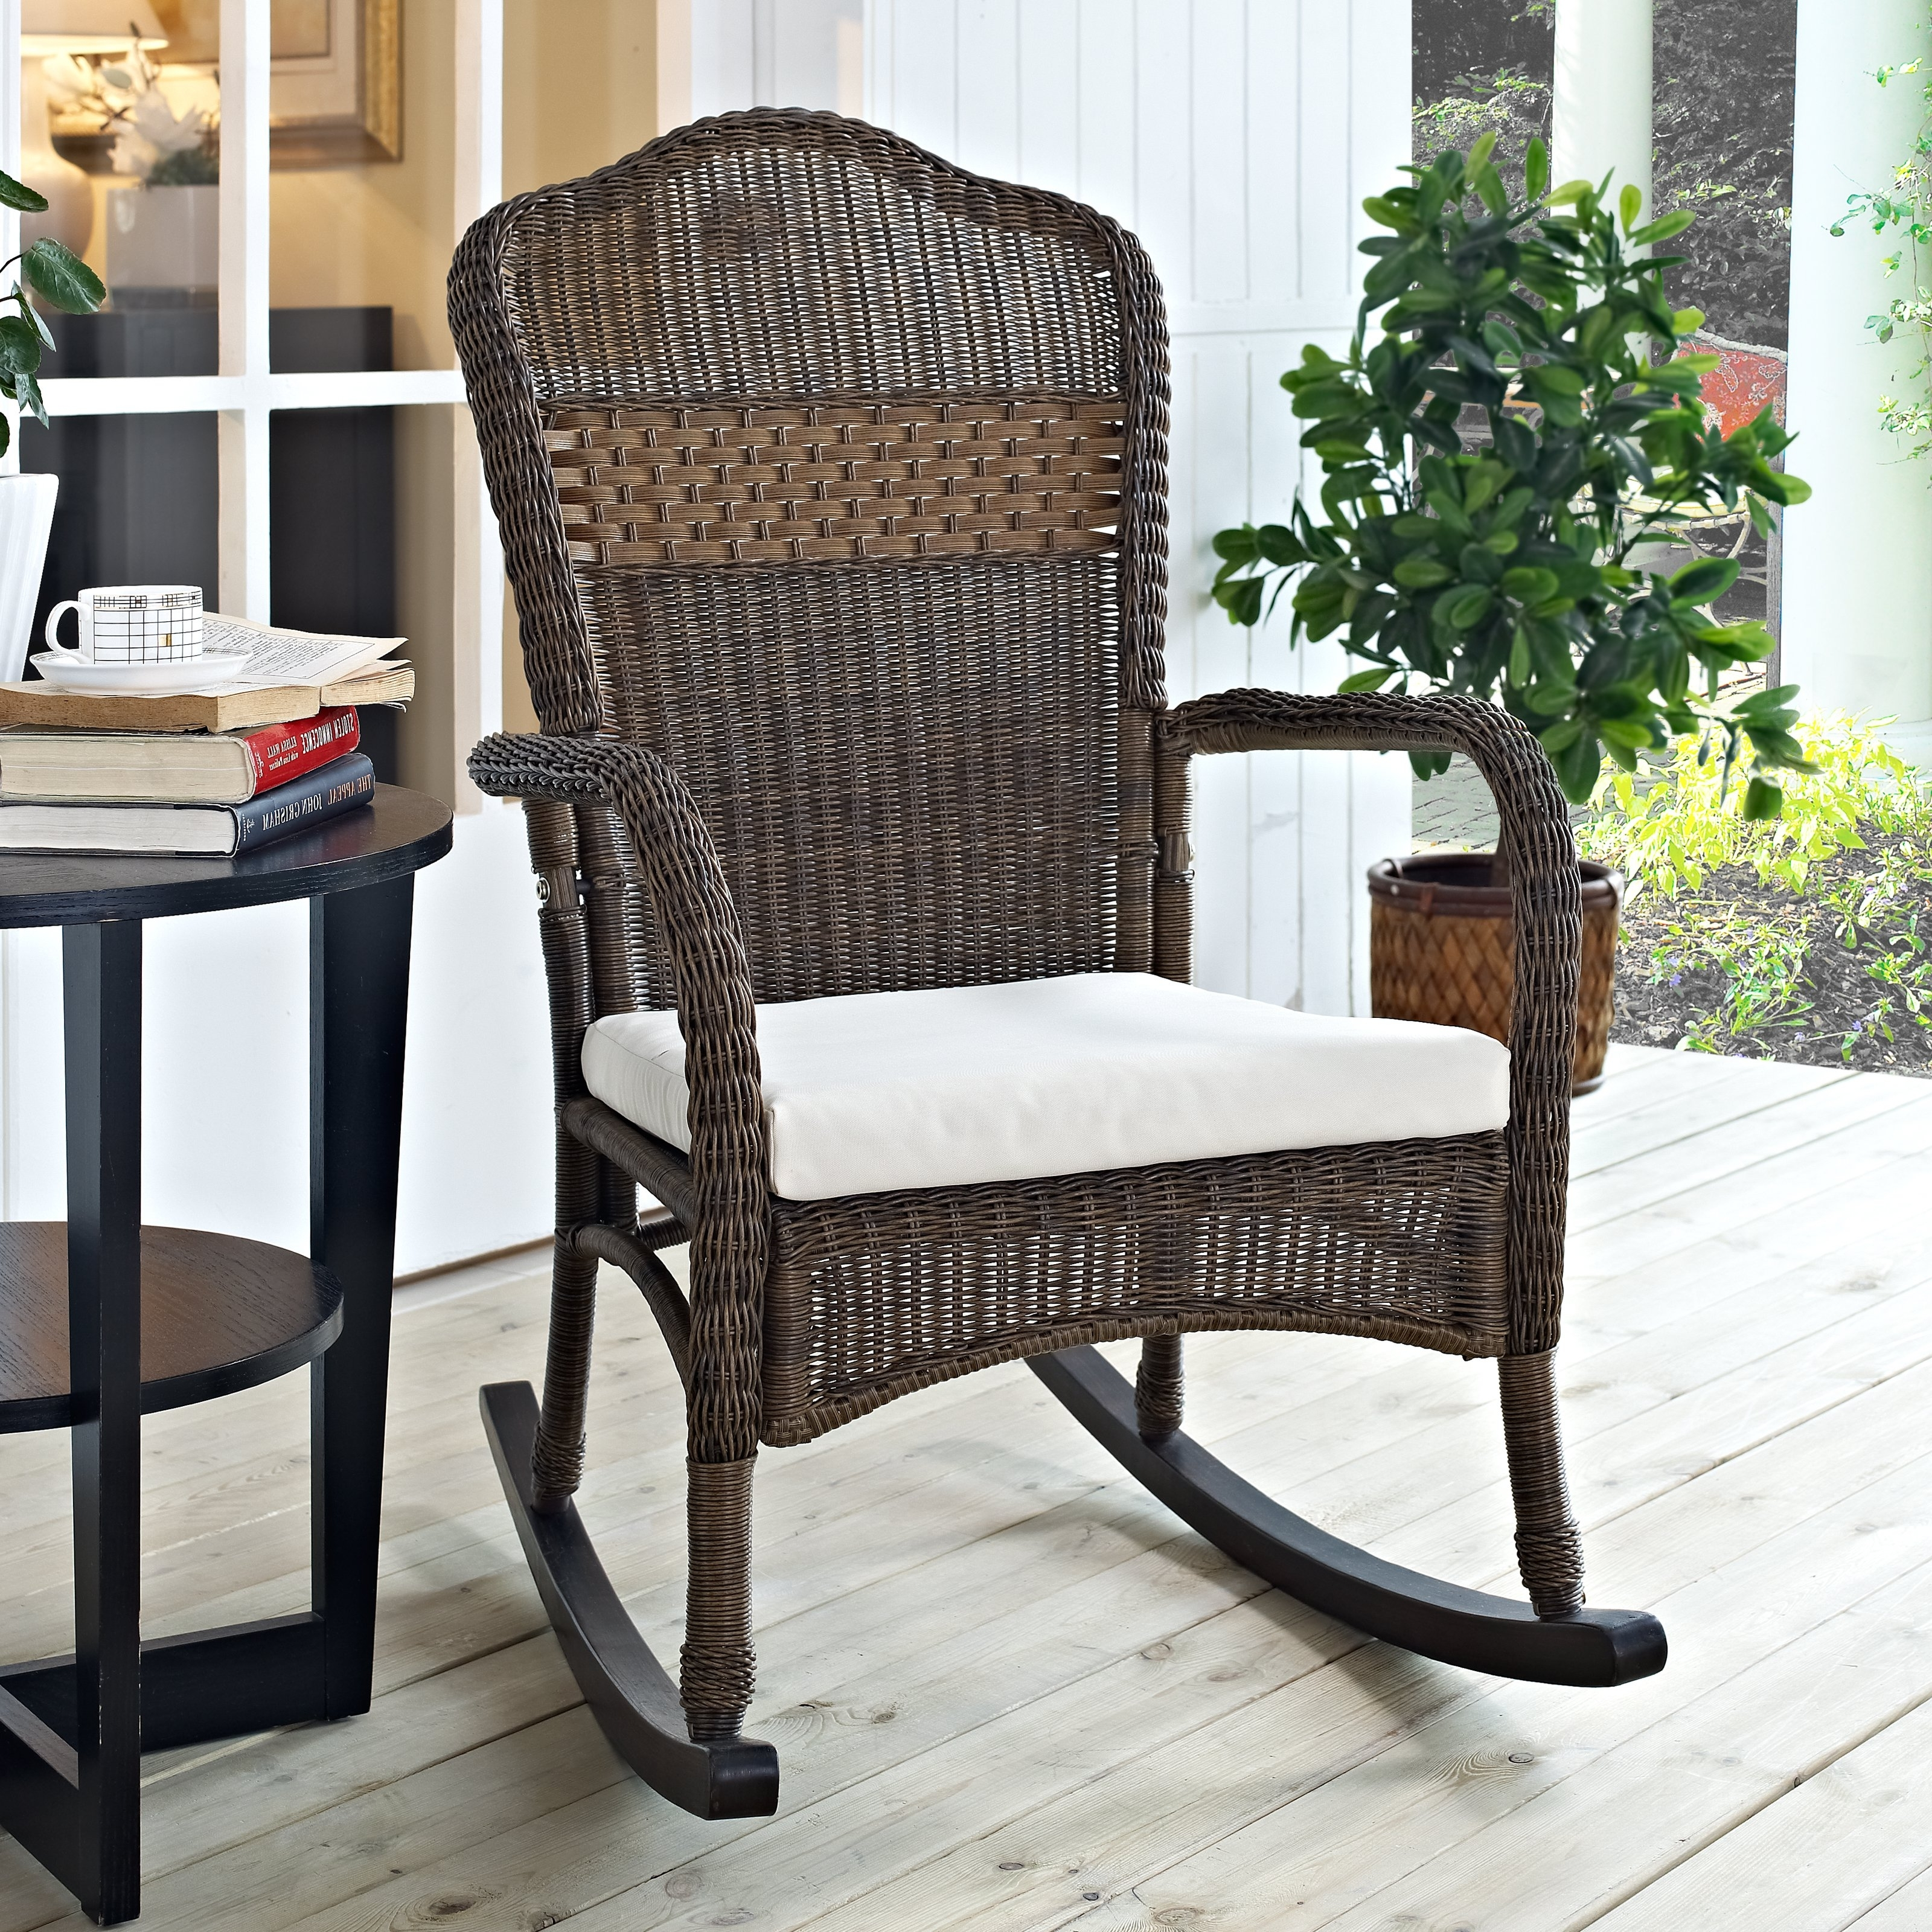 Popular Patio Furniture Chairs Outdoor Rocking Top Porch Residence Inside Widely Used Rocking Chairs For Outside (View 8 of 20)